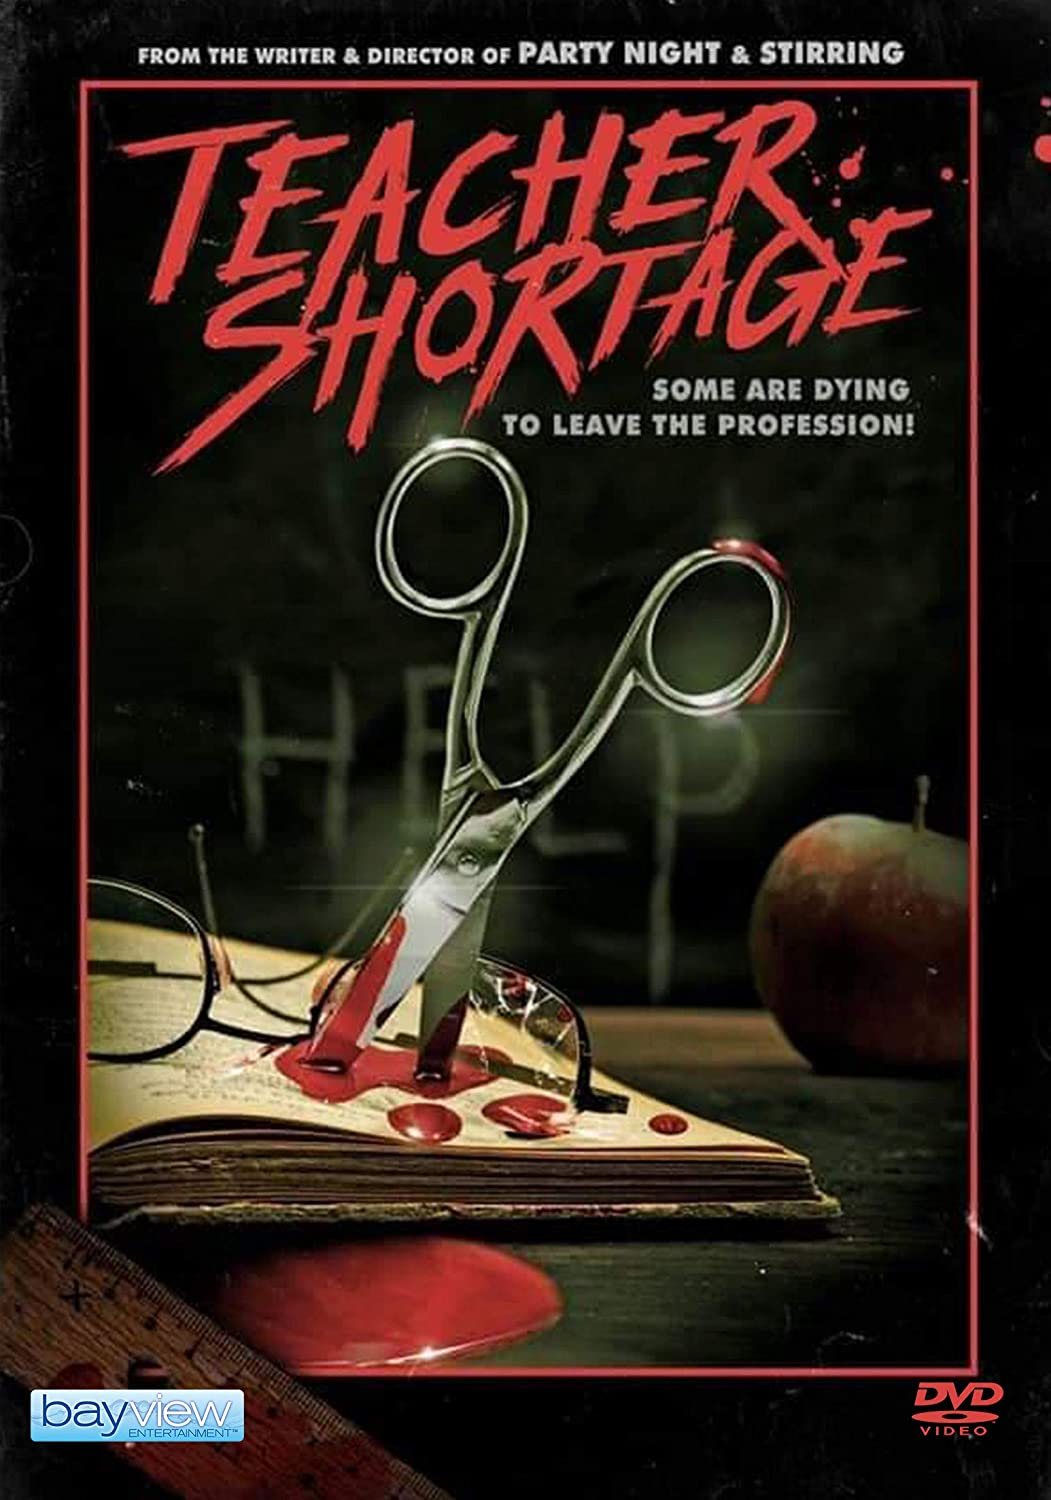 TEACHER SHORTAGE  Now Available on DVD from Bayview Entertainment